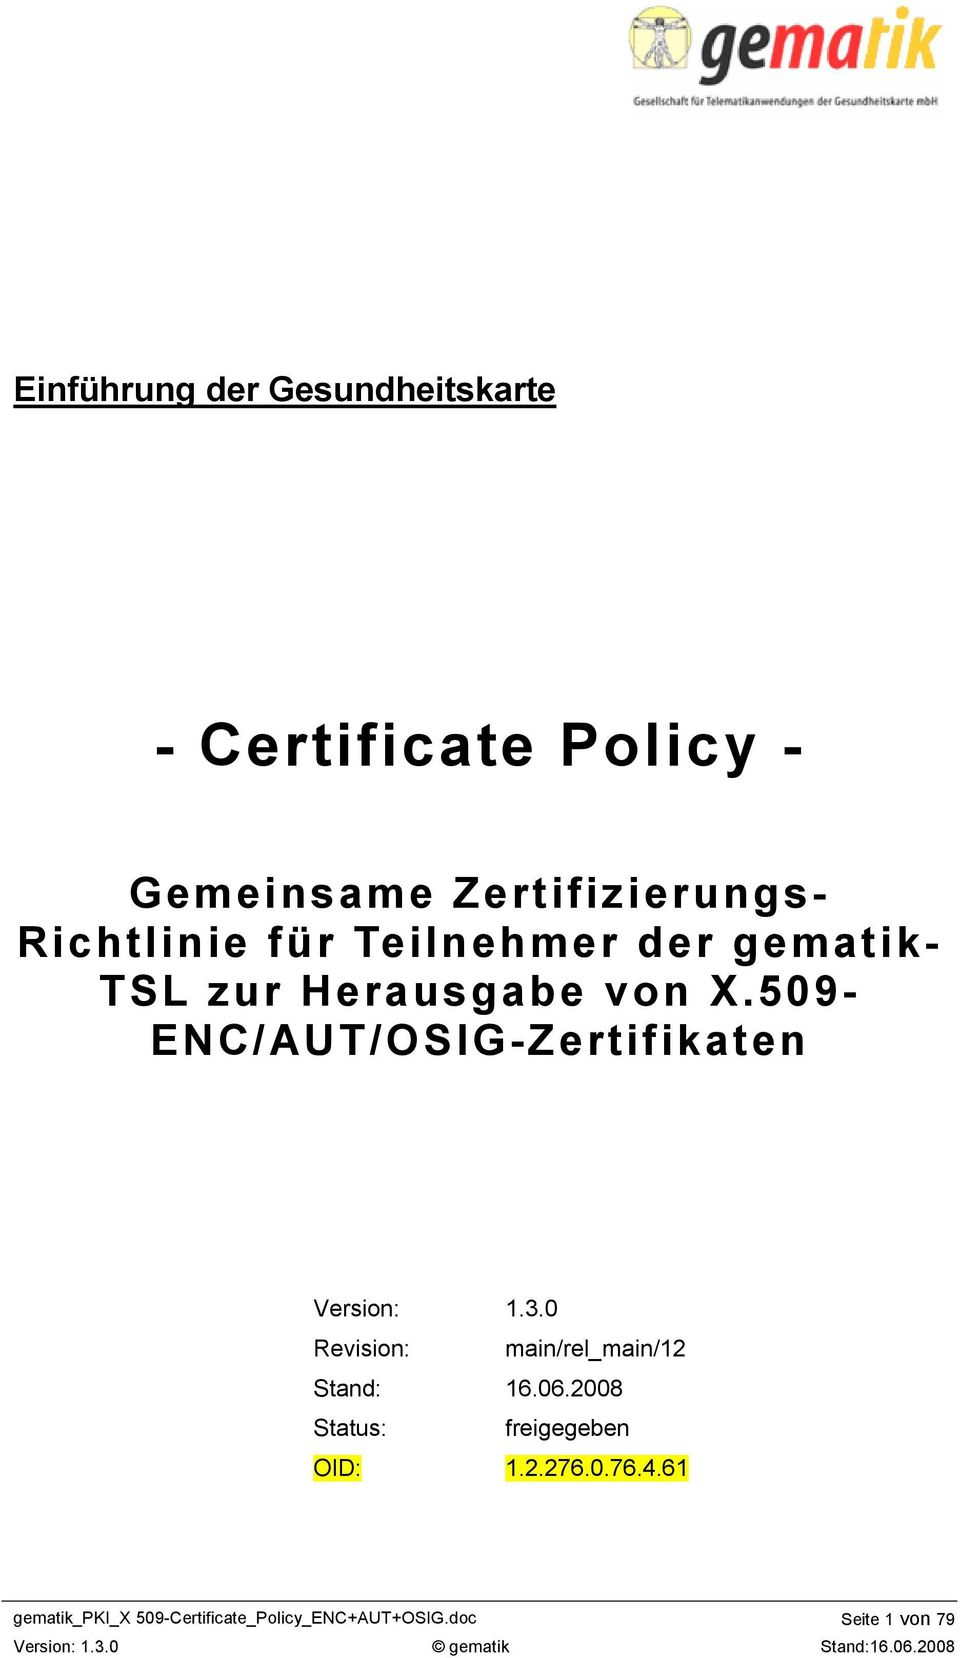 509- ENC/AUT/OSIG-Zertifikaten Version: 1.3.0 Revision: main/rel_main/12 Stand: 16.06.